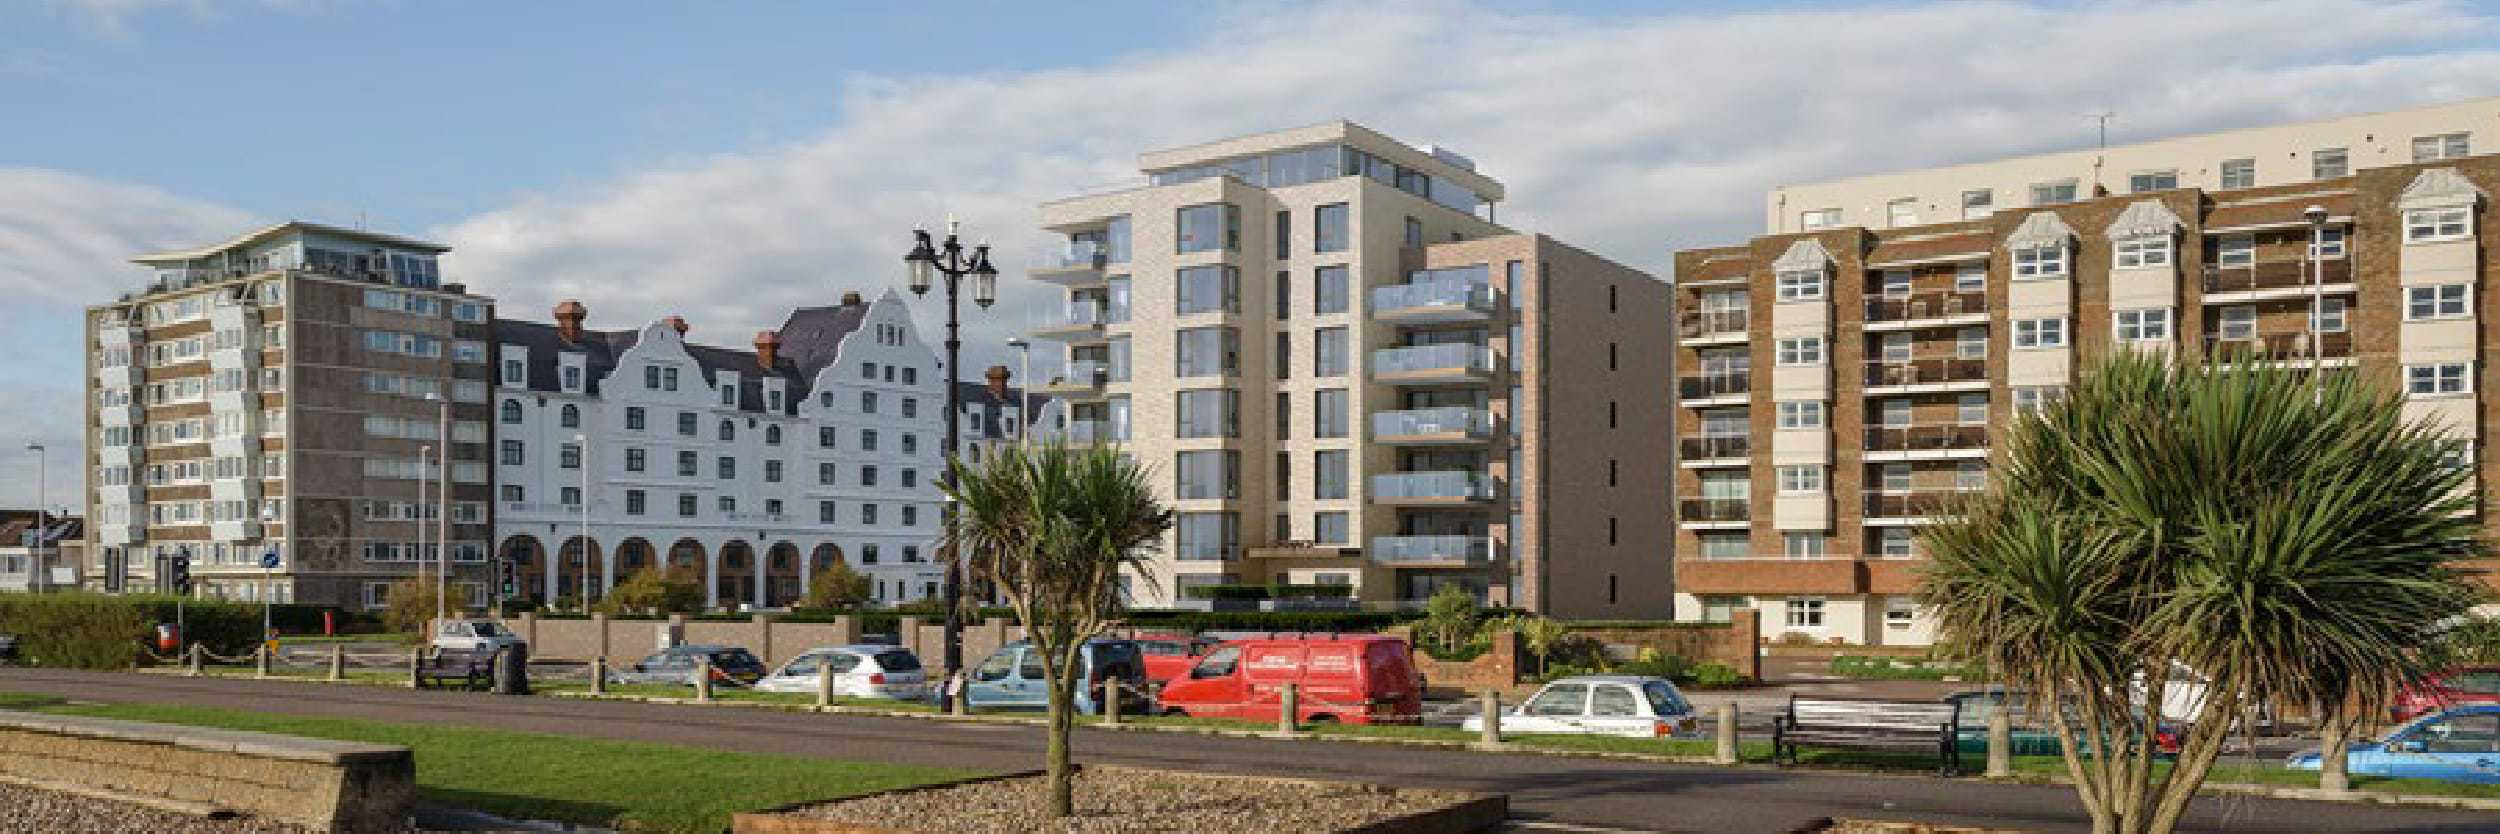 Applications. Residential. Grand Avenue, Worthing (1)